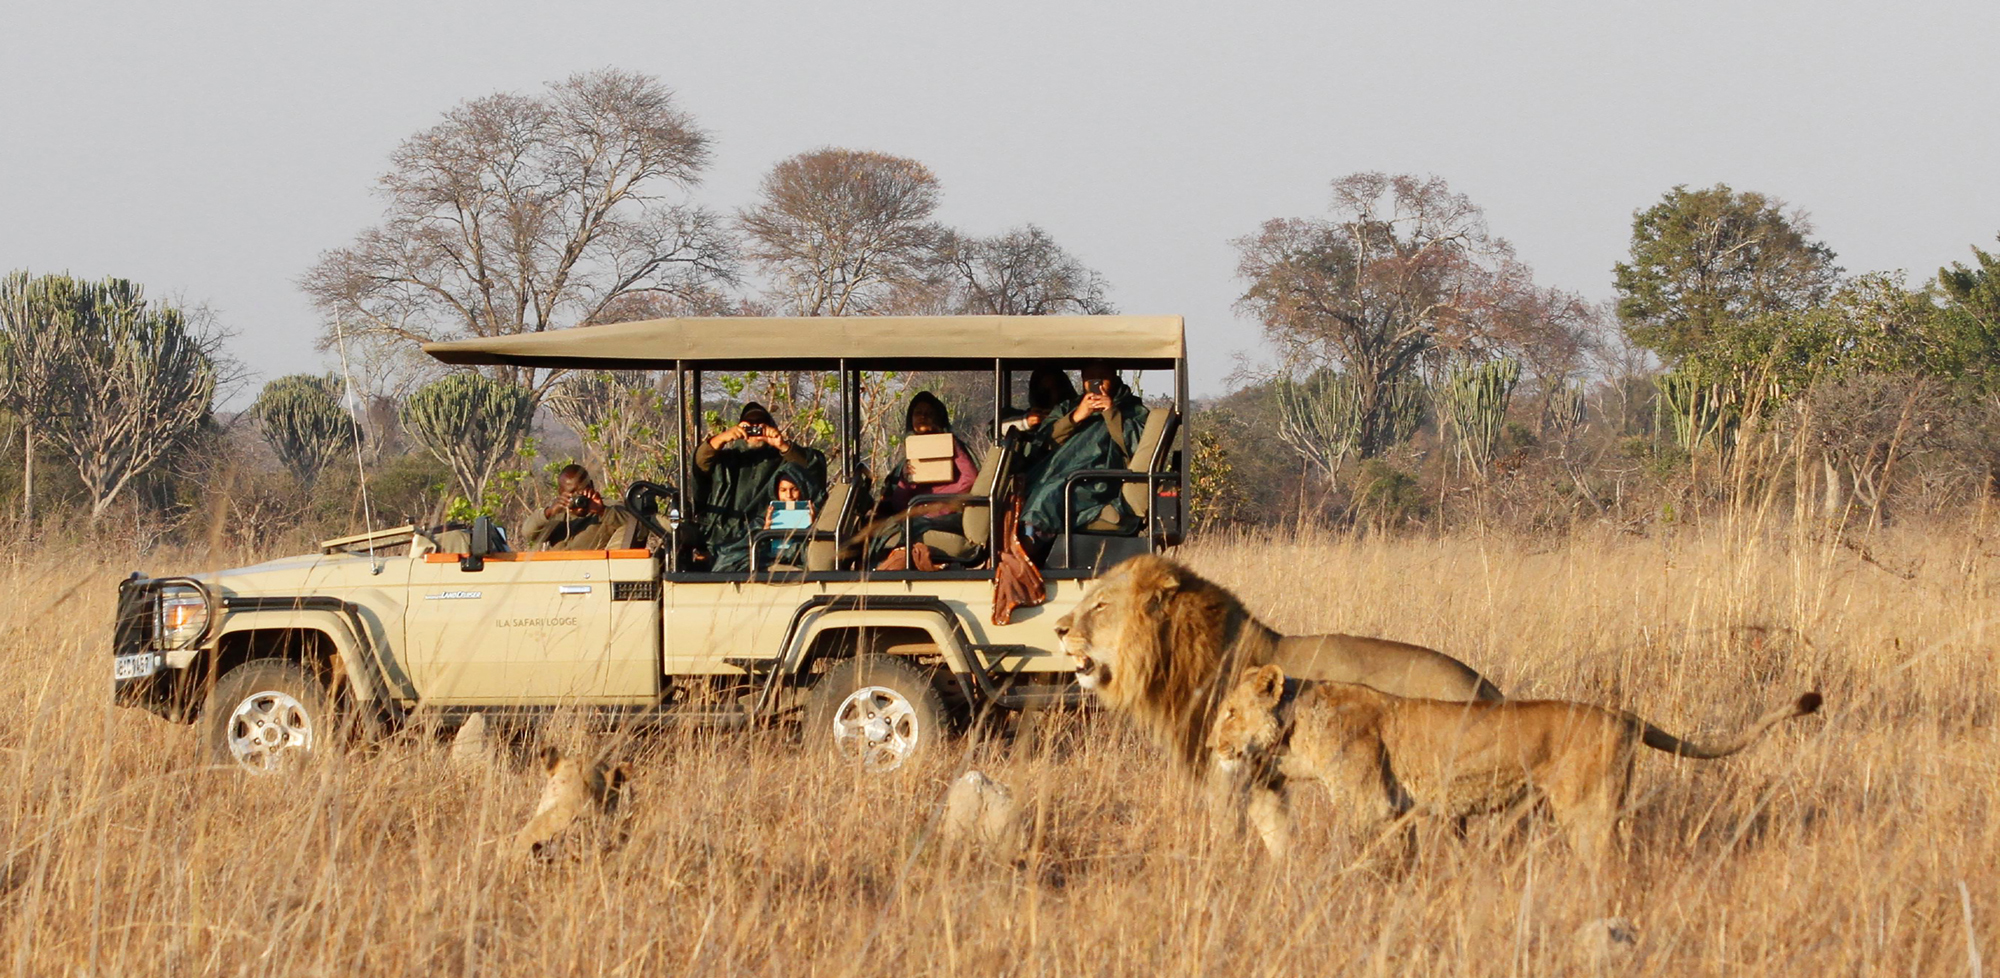 Guests watching lions from the vehicle in Zambia